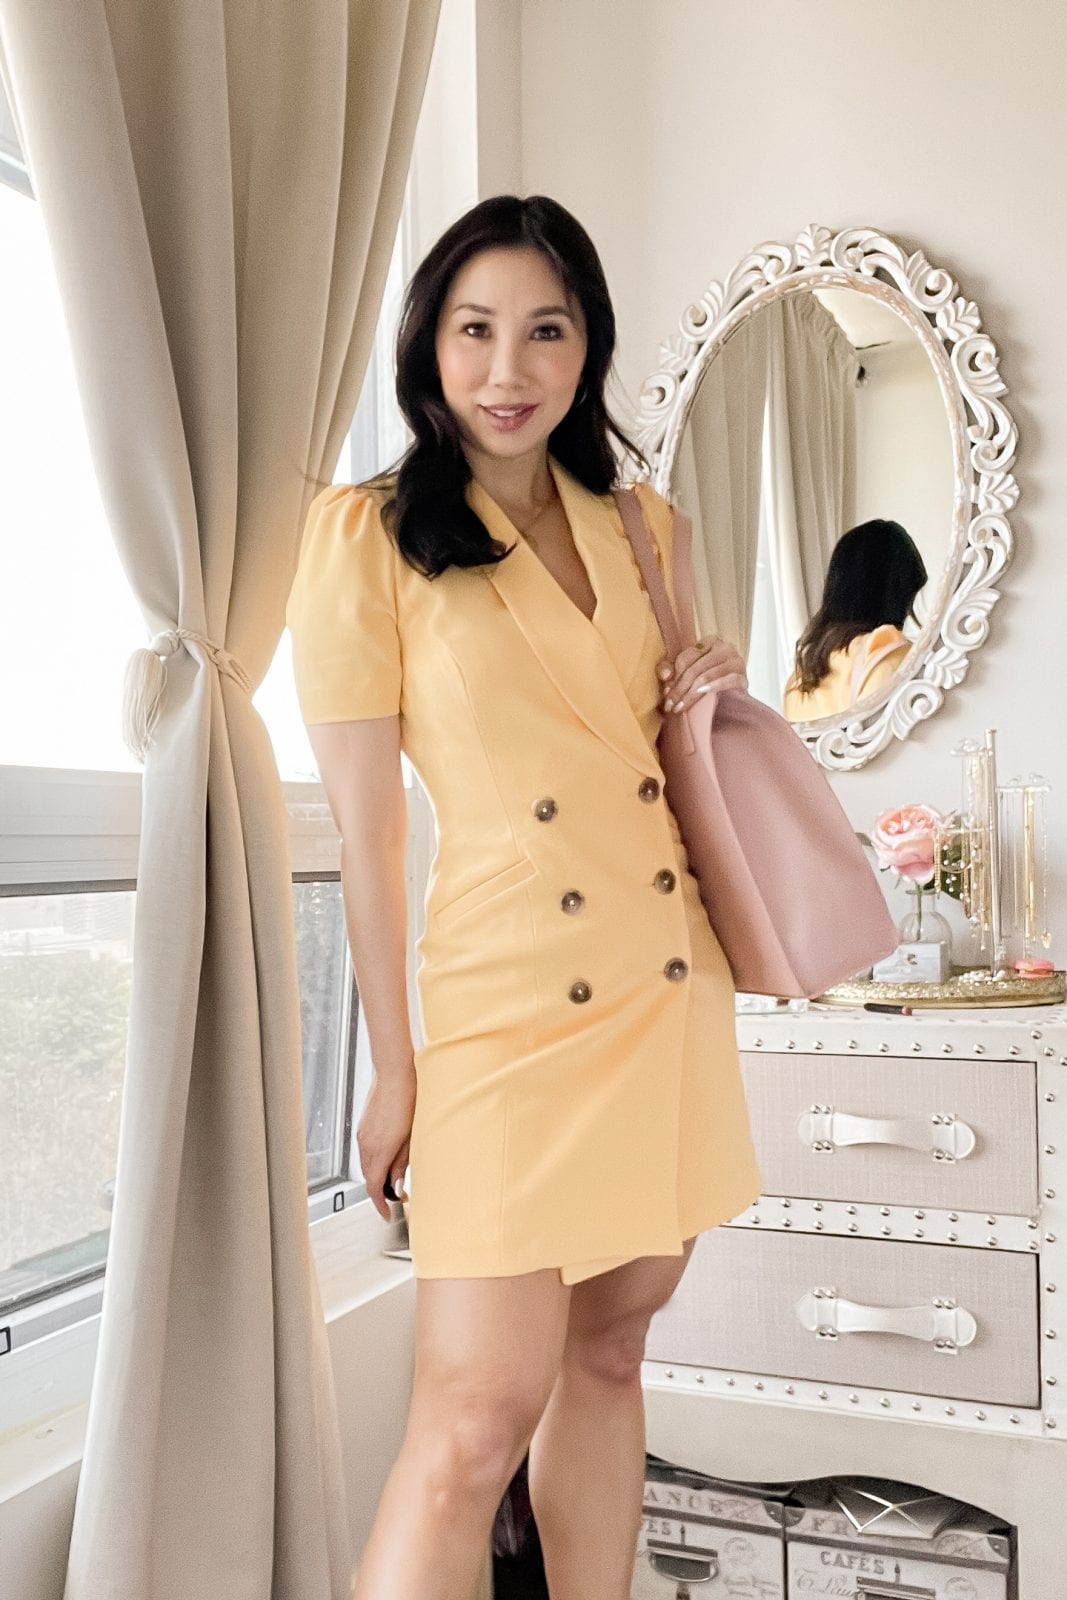 This cute yellow blazer dress will make a polished impression! This look is finished off with some gold jewellery and a classic heel for the ultimate feminine vibes. Check out more chic outfit ideas on yesmissy.com